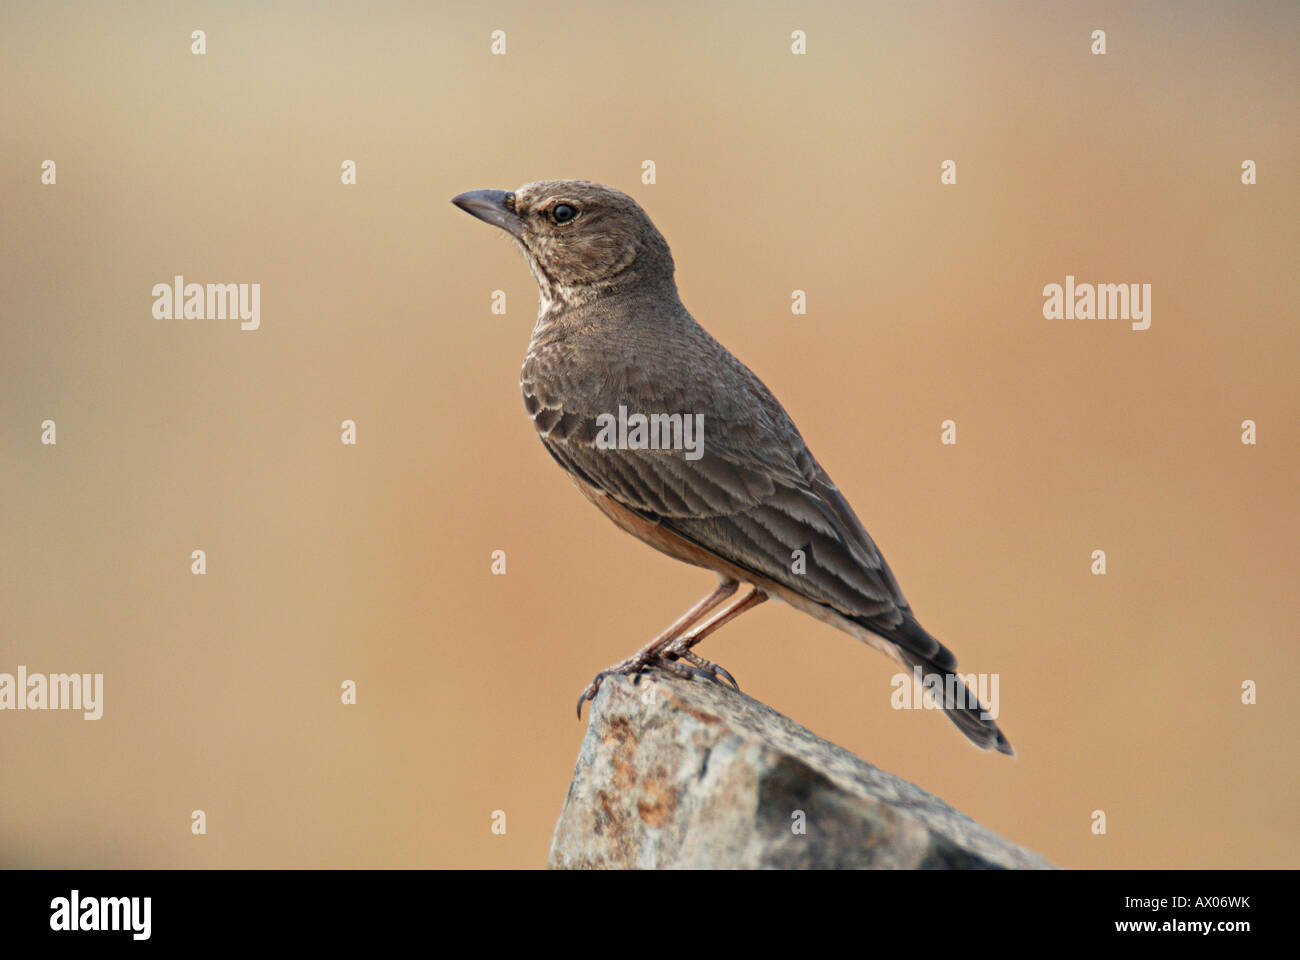 The Rufous-tailed Lark, Ammomanes phoenicurus, is a ground bird found in open stony country and low rocky hills - Stock Image